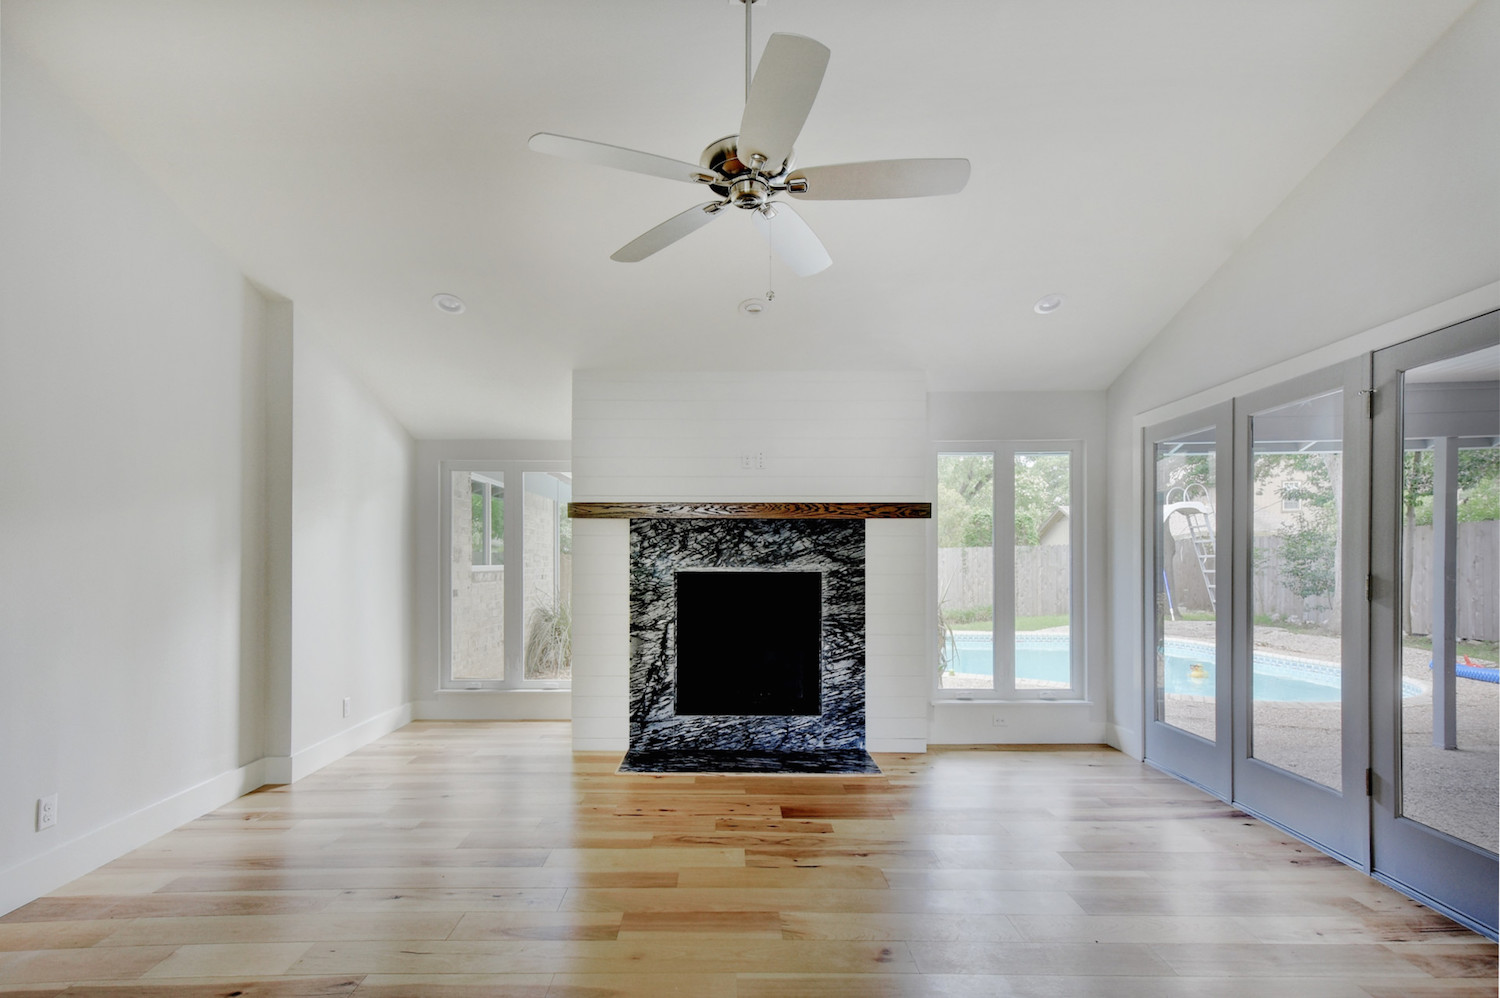 large open room with fireplace focal point